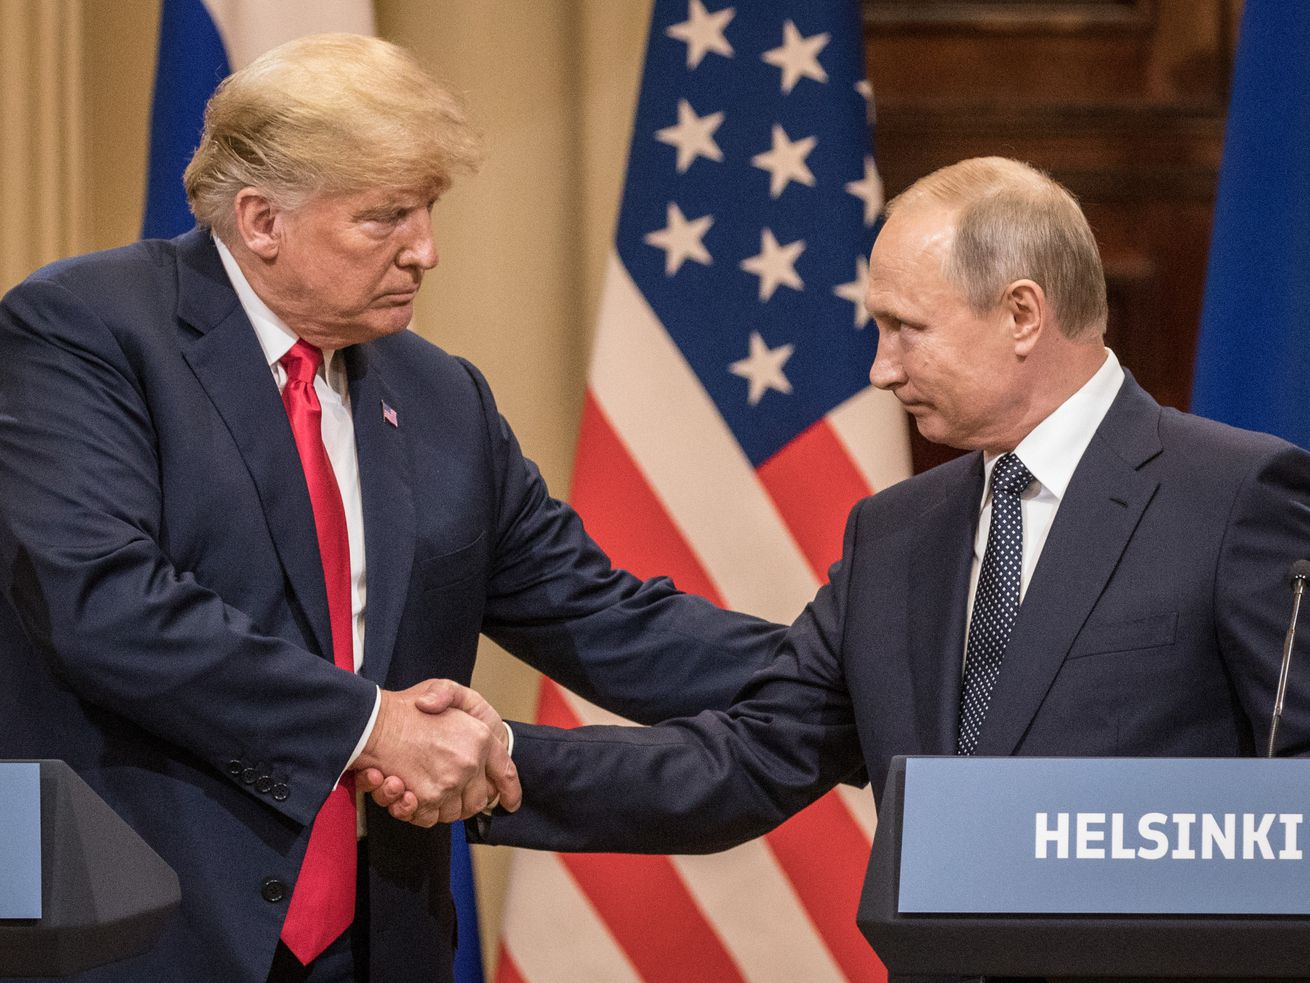 US President Donald Trump (L) and Russian President Vladimir Putin shake hands during a joint press conference after their summit on July 16, 2018, in Helsinki, Finland.